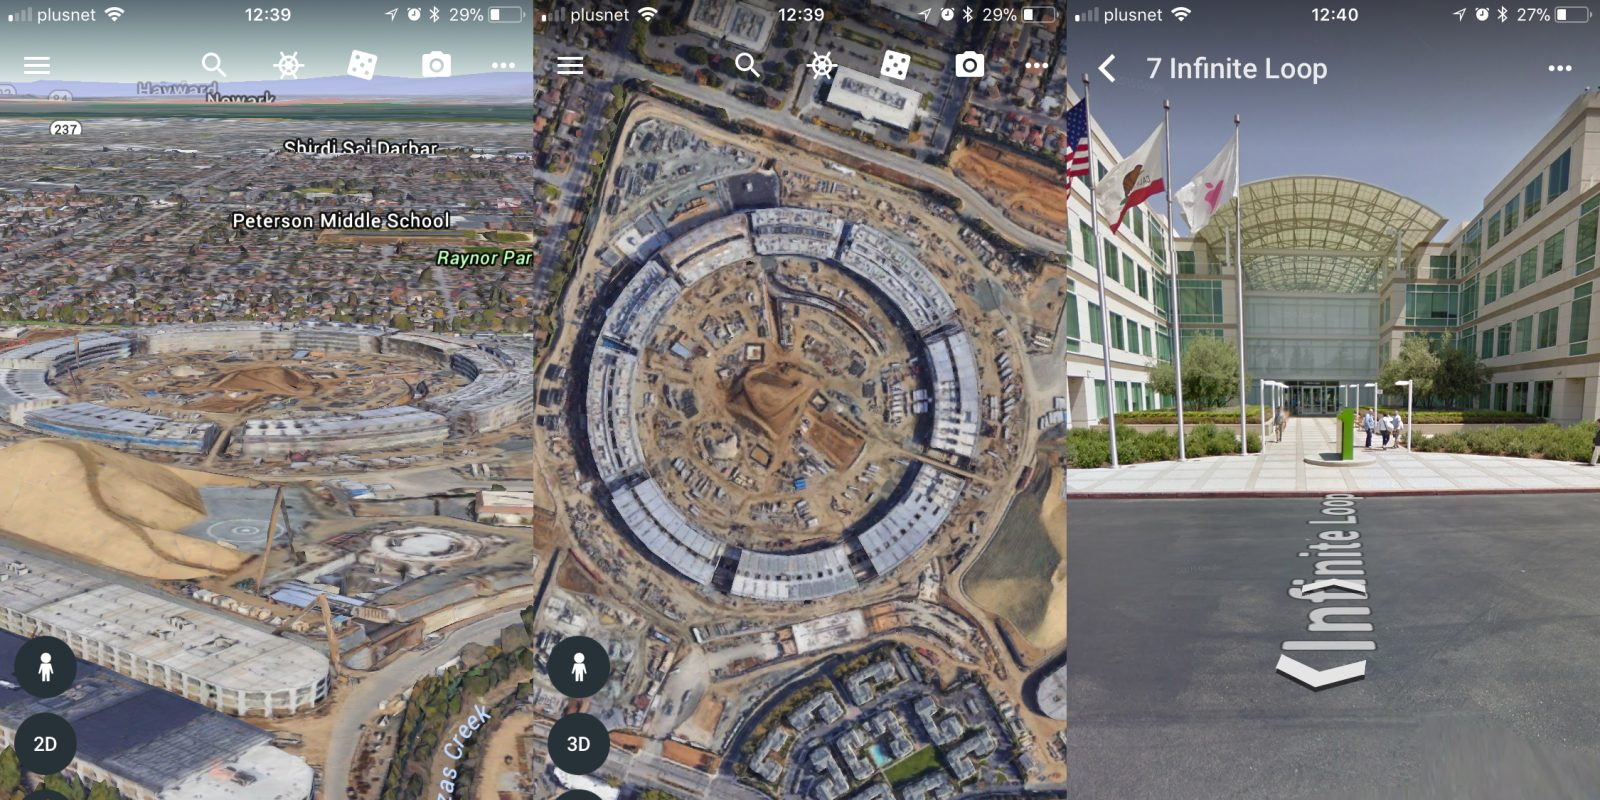 google earth app update adds 64 bit support in time for ios 11 cutoff new 3d views